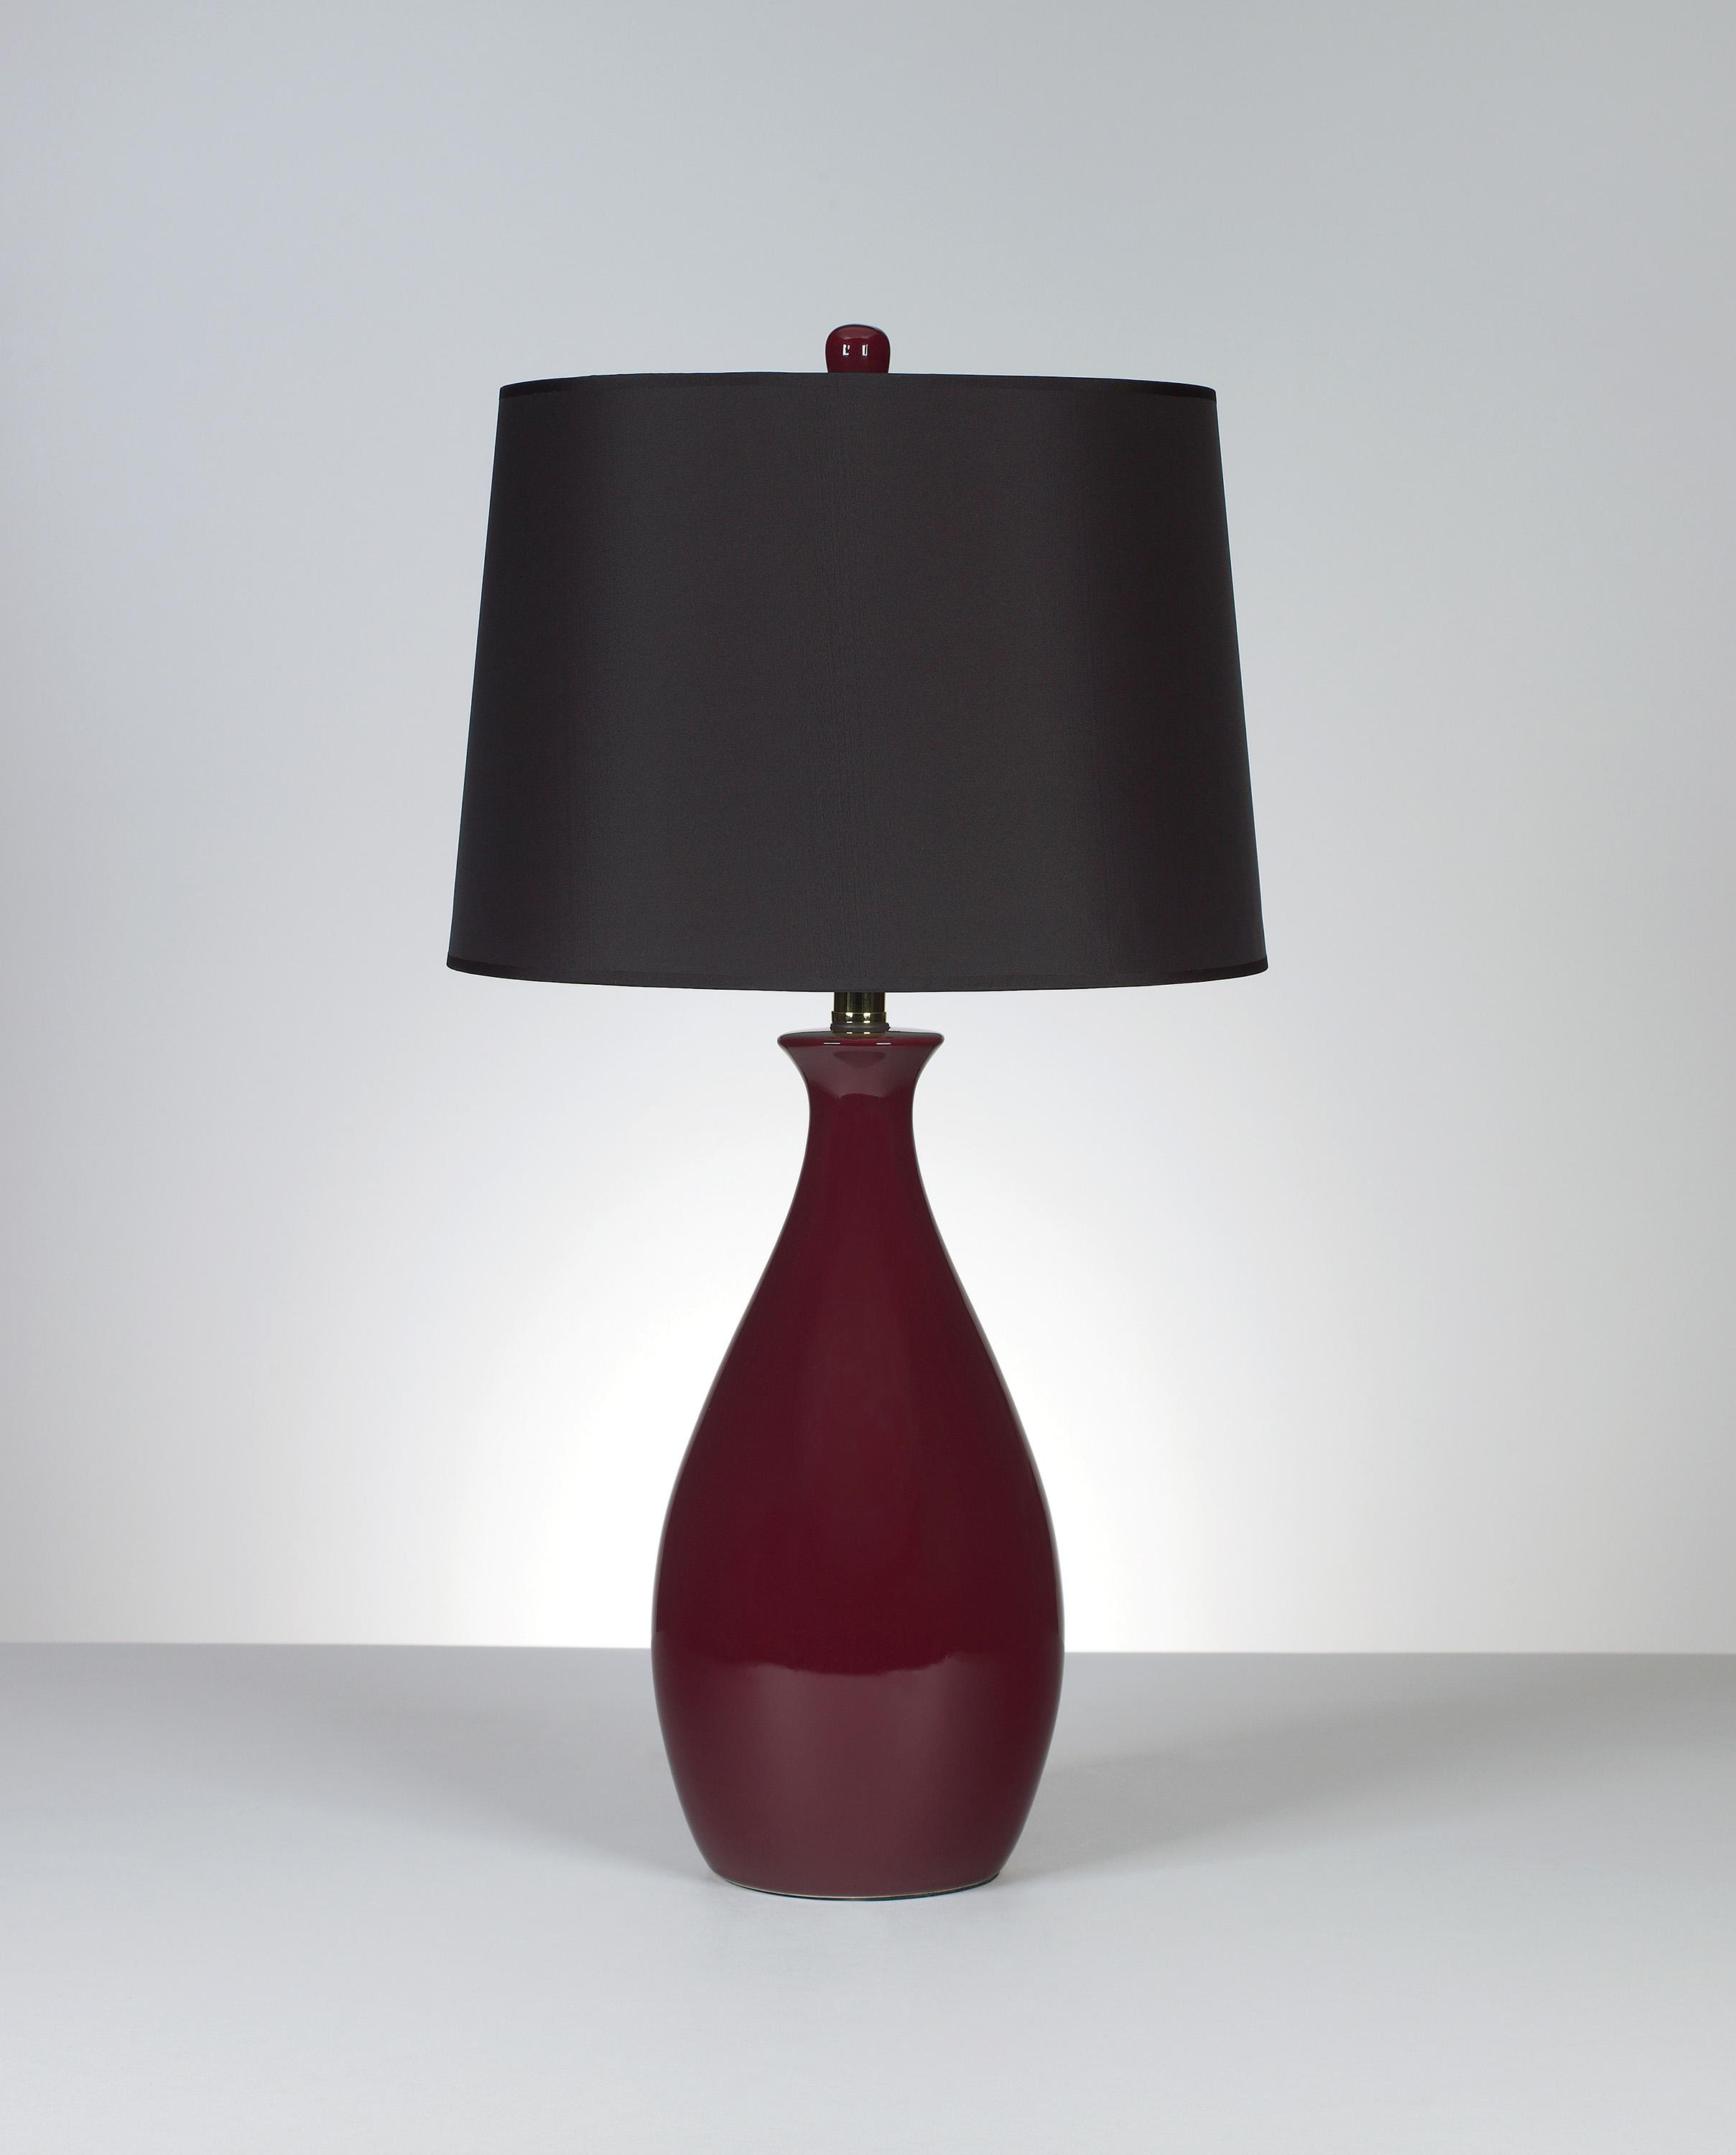 Signature Design by Ashley Lamps - Contemporary Set of 2 Jemma Table Lamps - Item Number: L247014